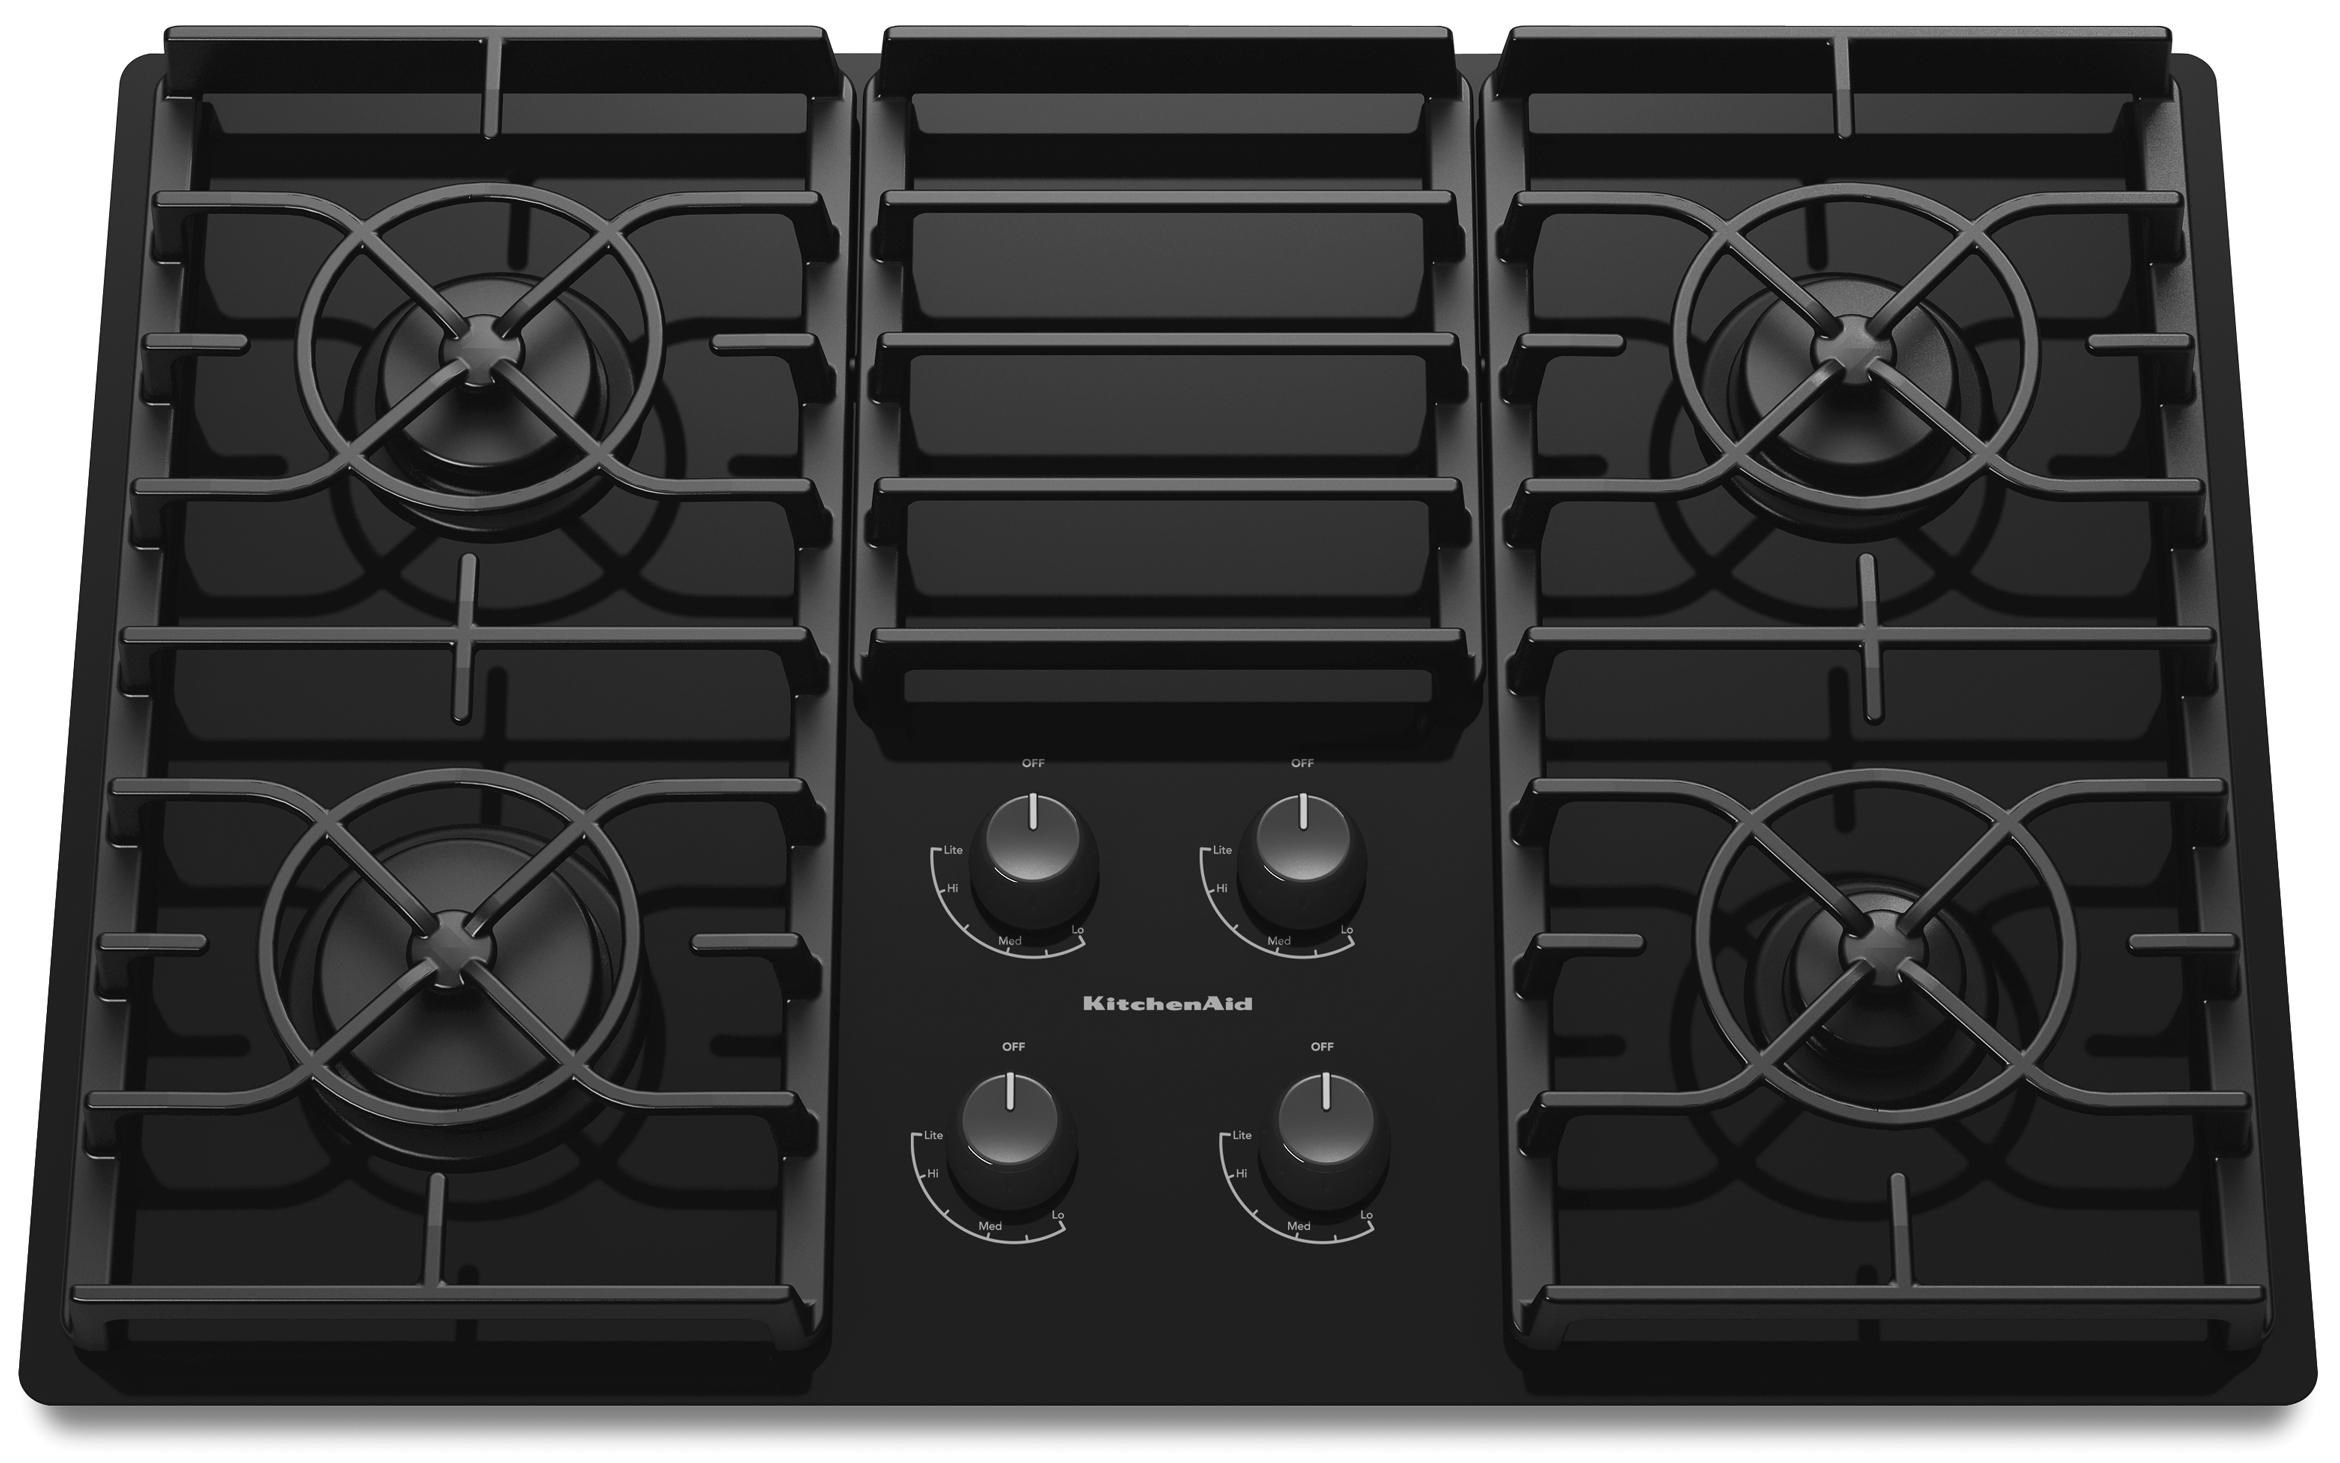 Charmant KitchenAid Gas Cooktops30 ...